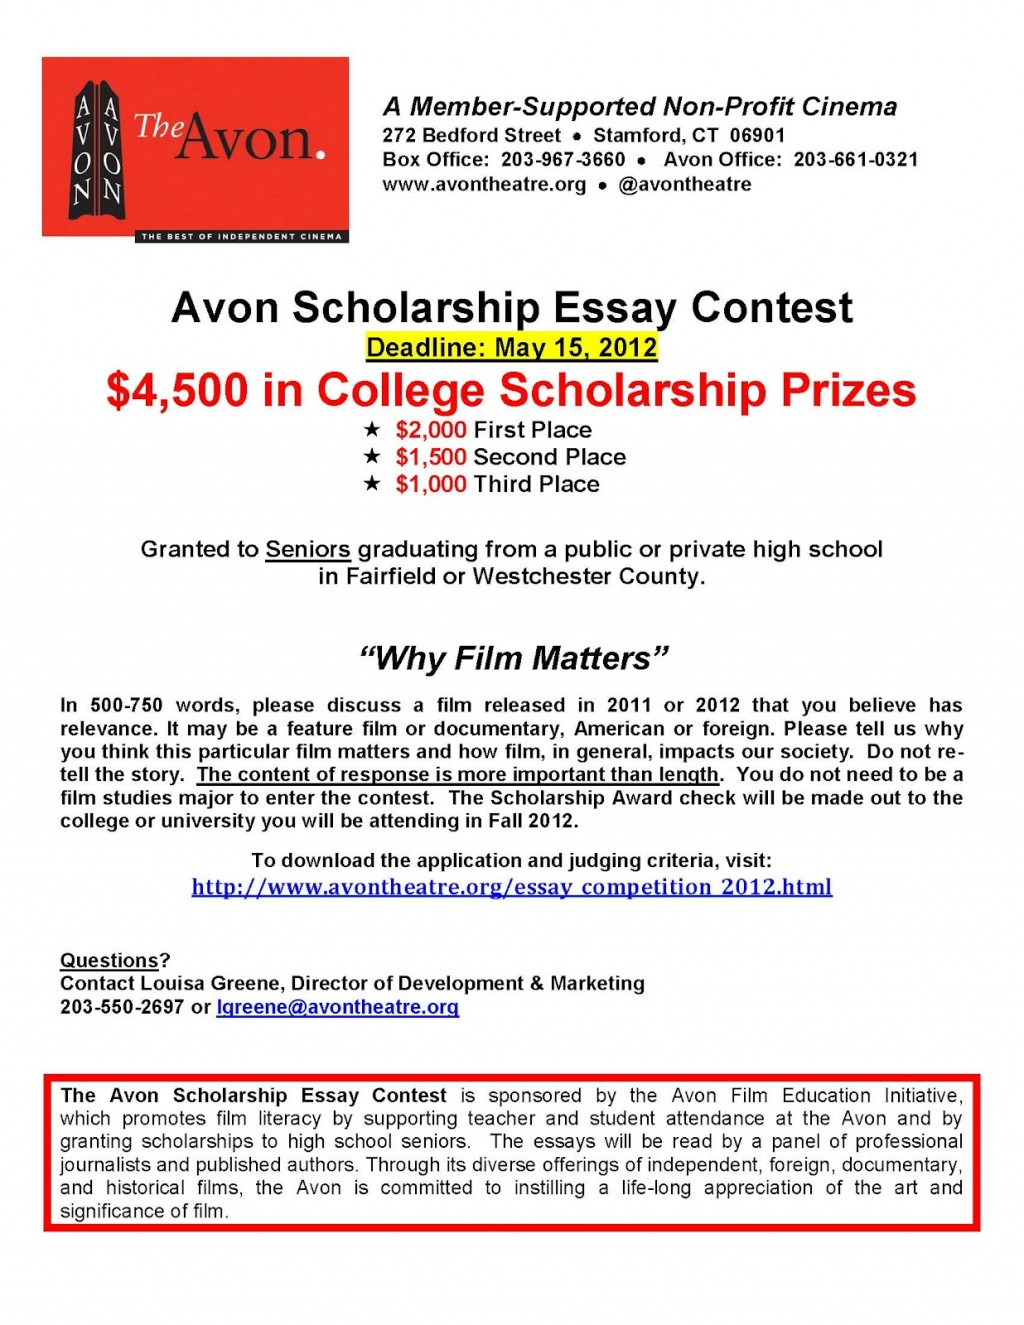 003 Non Essay Scholarships Example No College Scholarship Prowler Free For High School Seniors Avonscholarshipessaycontest2012 In Texas California Class Of Short Imposing Undergraduates Large